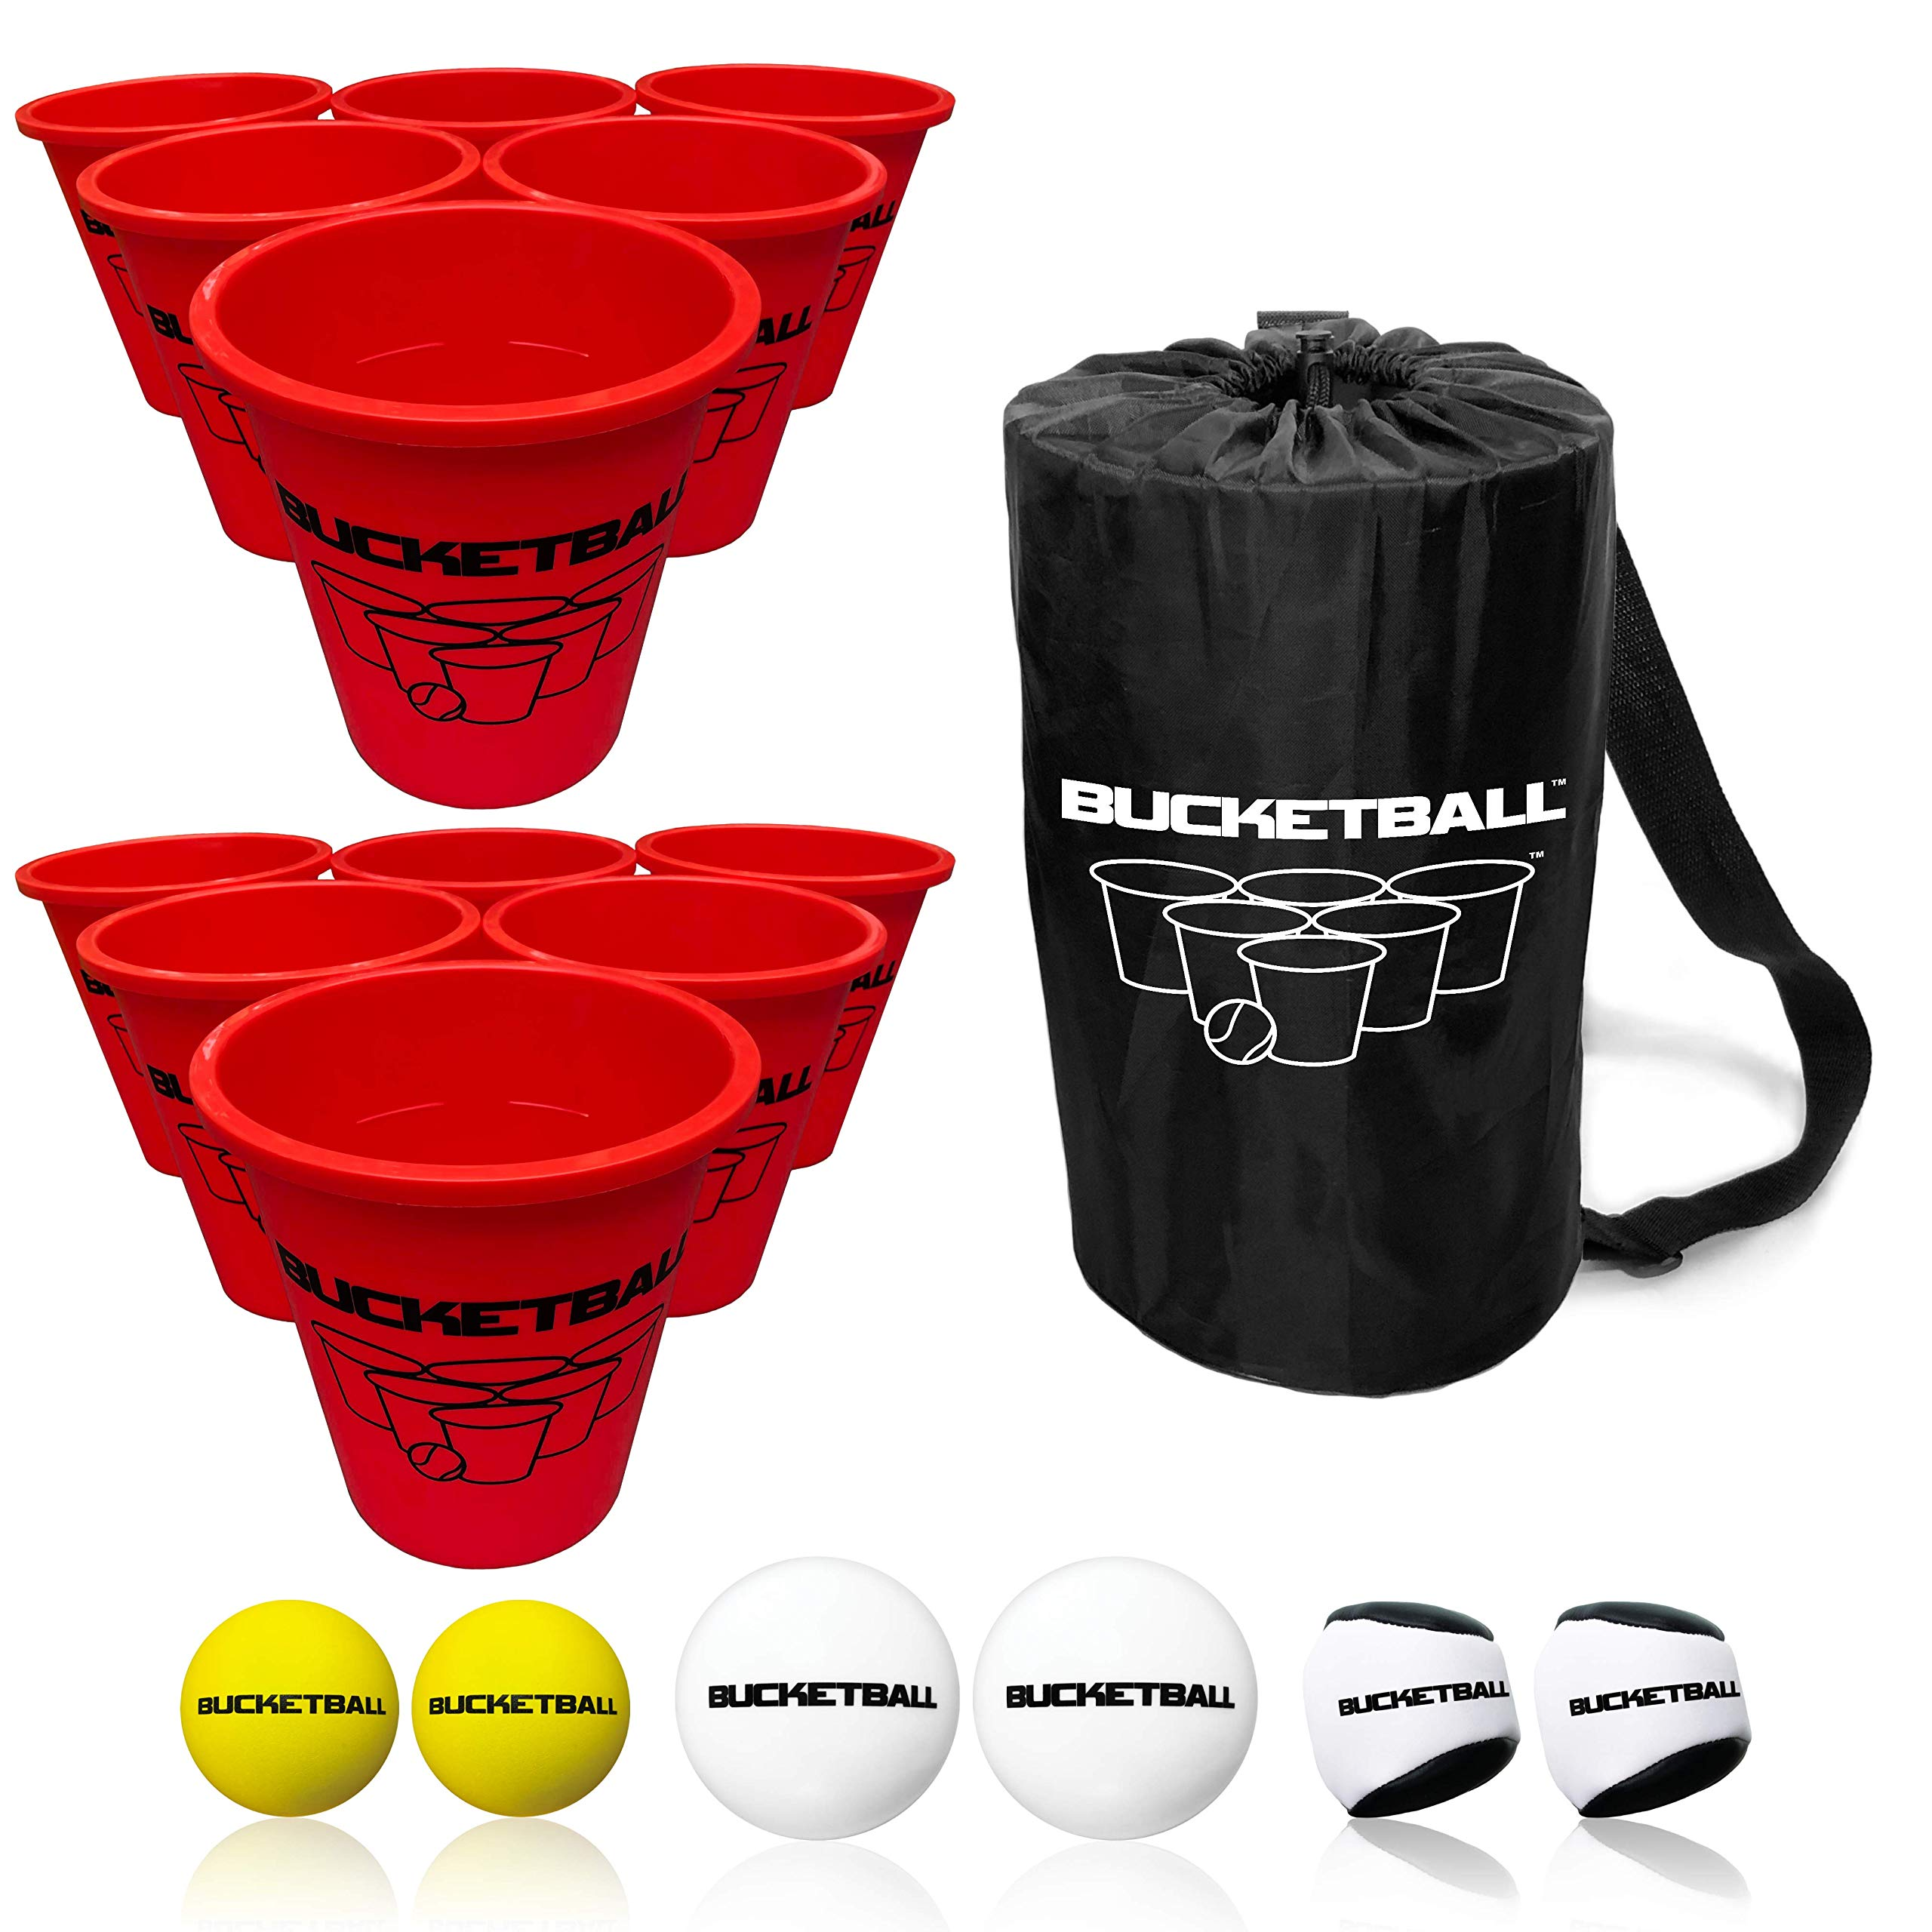 BucketBall - Giant Yard Pong Edition Combo Pack - Best Beach, Pool, Yard, Camping, Tailgate, BBQ, Lawn, Water, Indoor, Outdoor Game Toy for Adults, Boys, Girls, Teens, Family by BucketBall